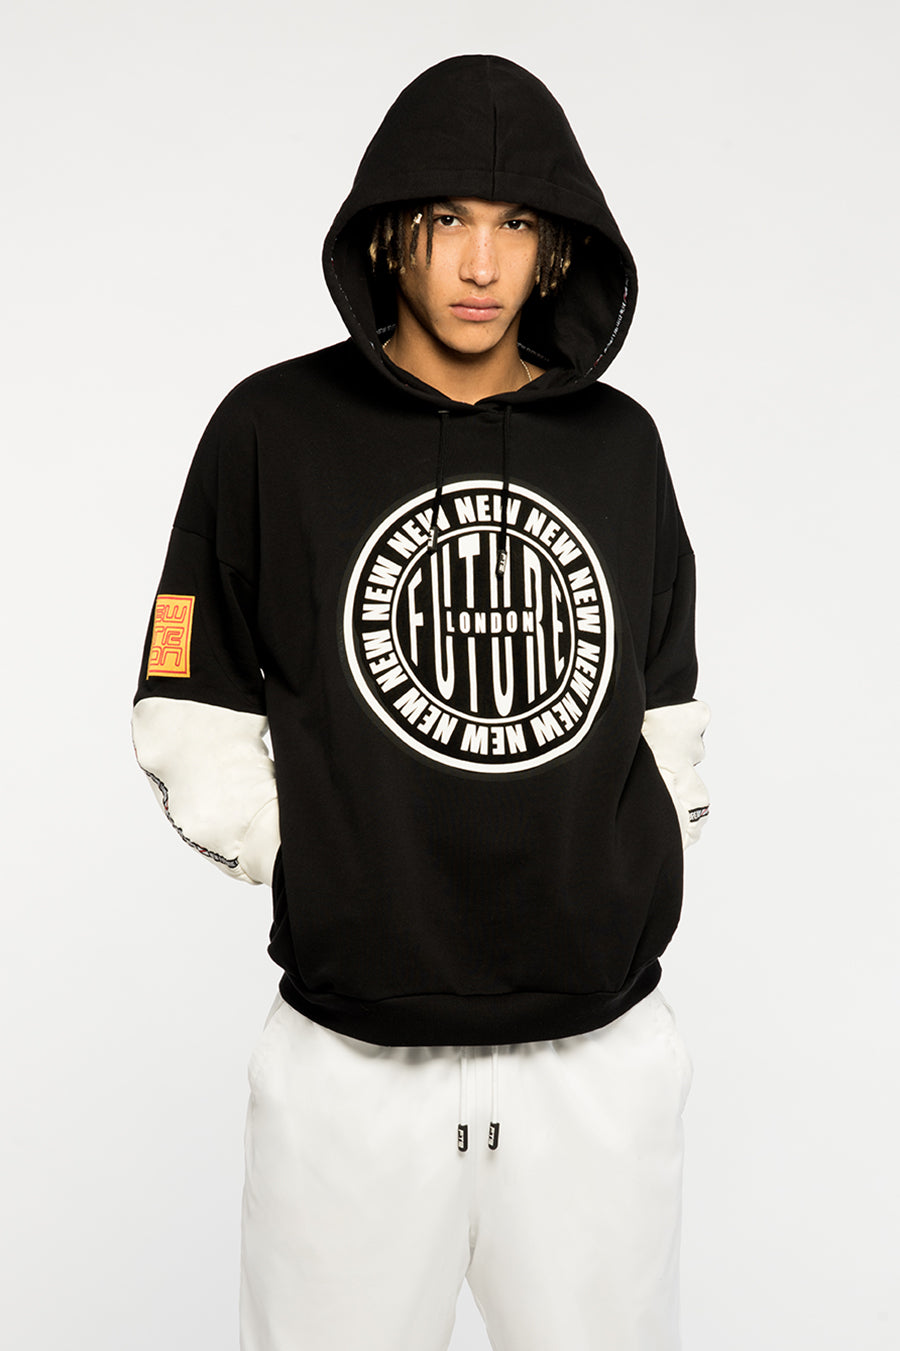 new_future_london_stamp_hooded_sweat_black_2-1.jpg